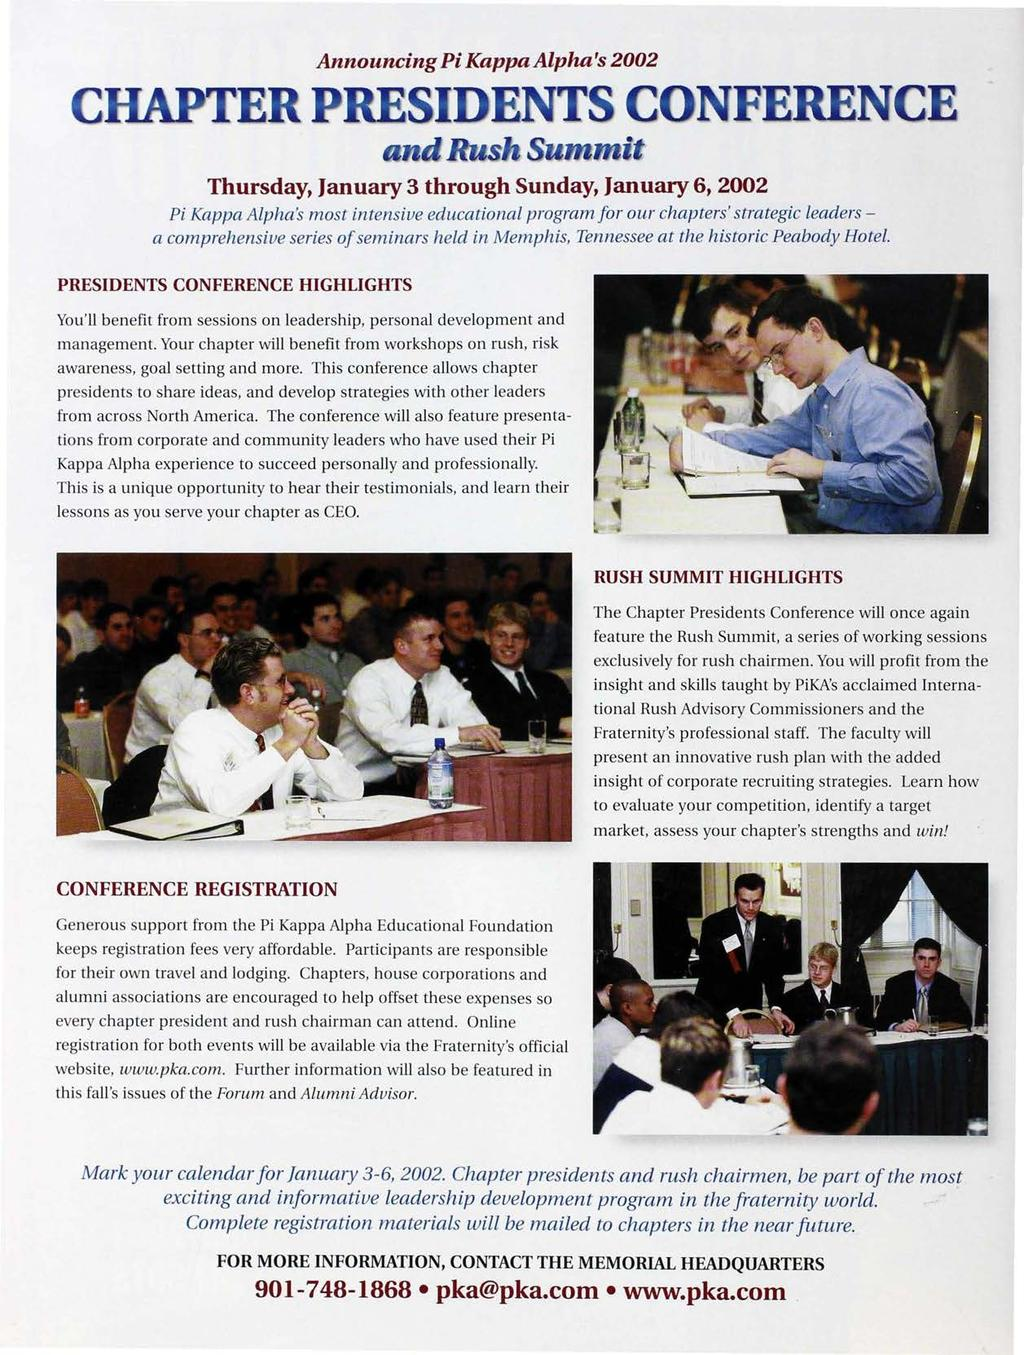 Announcing Pi Kappa Alpha's 2002 m Thursday, January 3 through Sunday, January 6, 2002 Pi Kappa Alpha's most intensive educational program for our chapters' strategic leaders - a comprehensive series